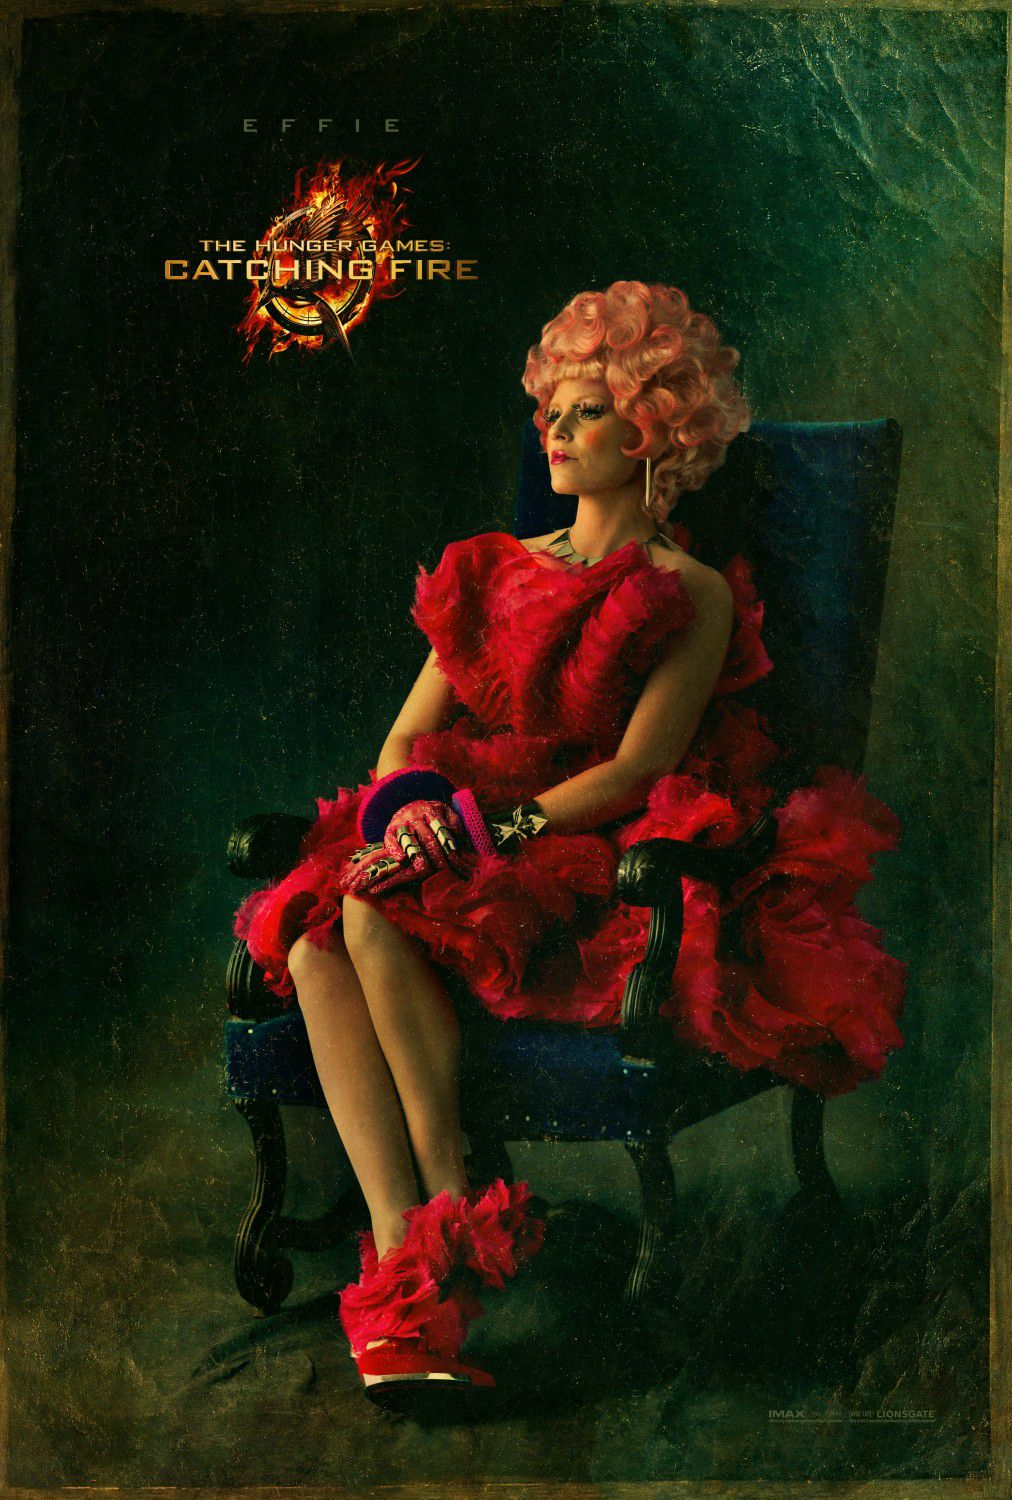 Elizabeth Banks is Effie Trinket